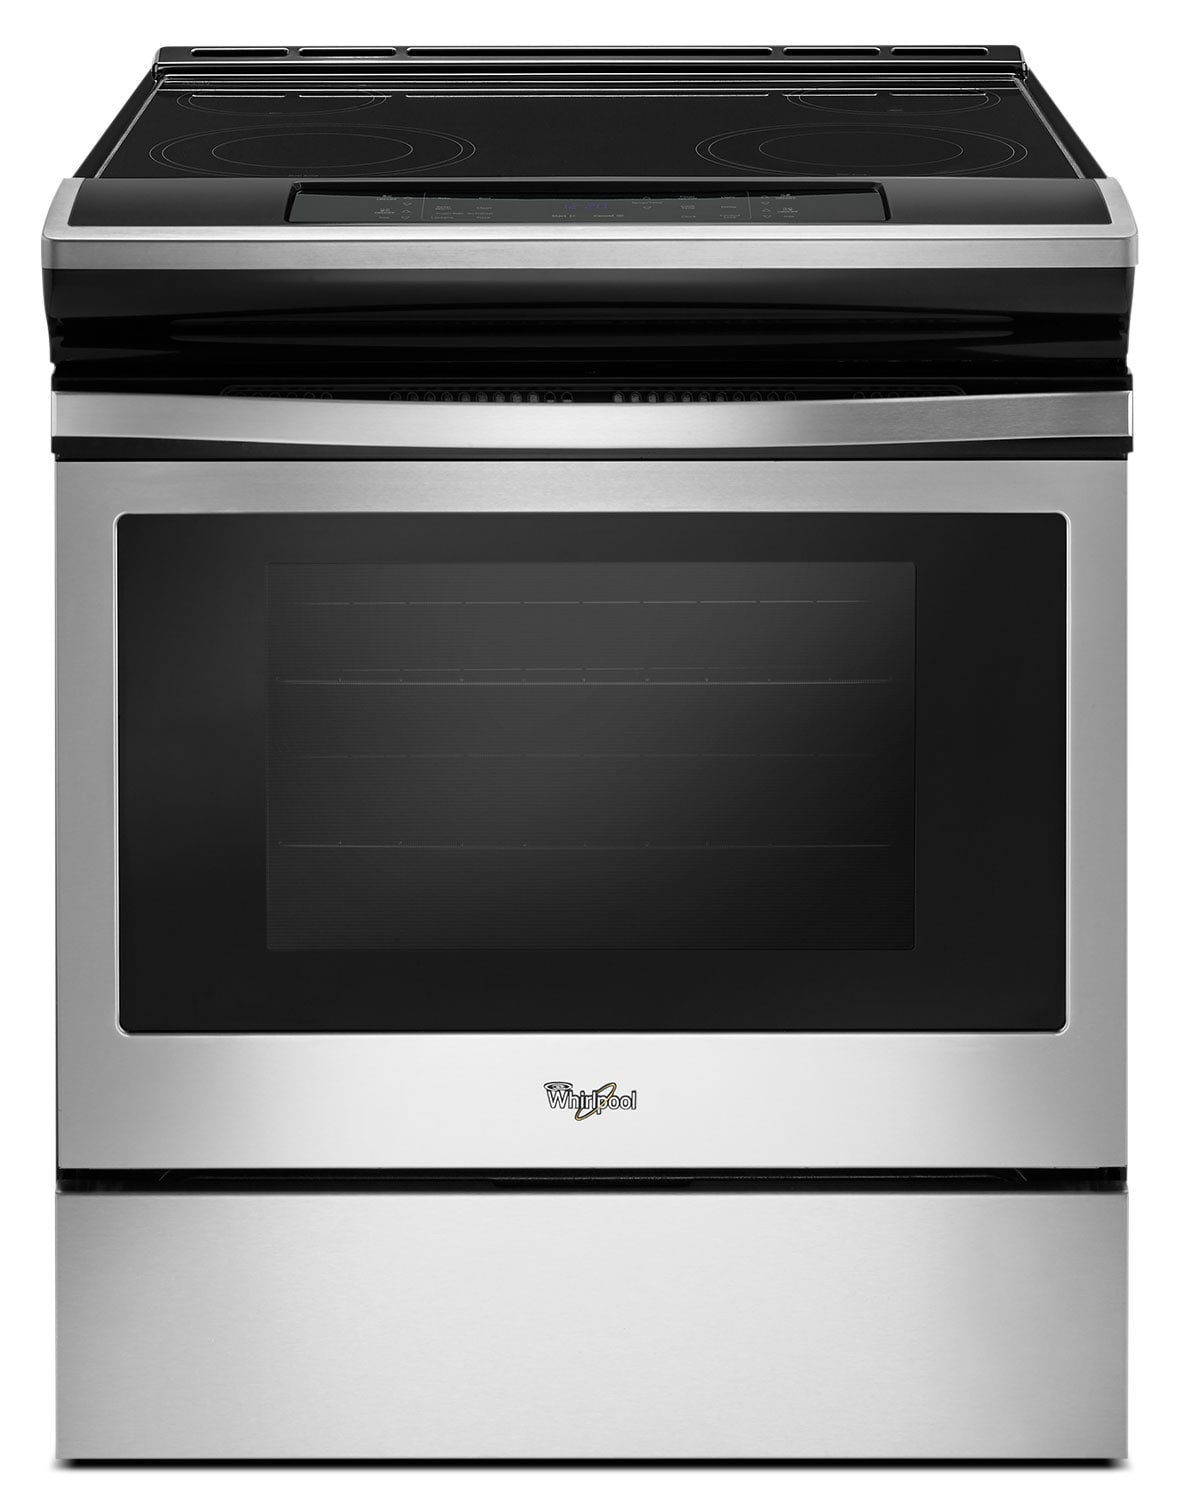 Whirlpool Stainless Steel Slide-In Electric Range (4.8 Cu. Ft.) - YWEE510S0FS